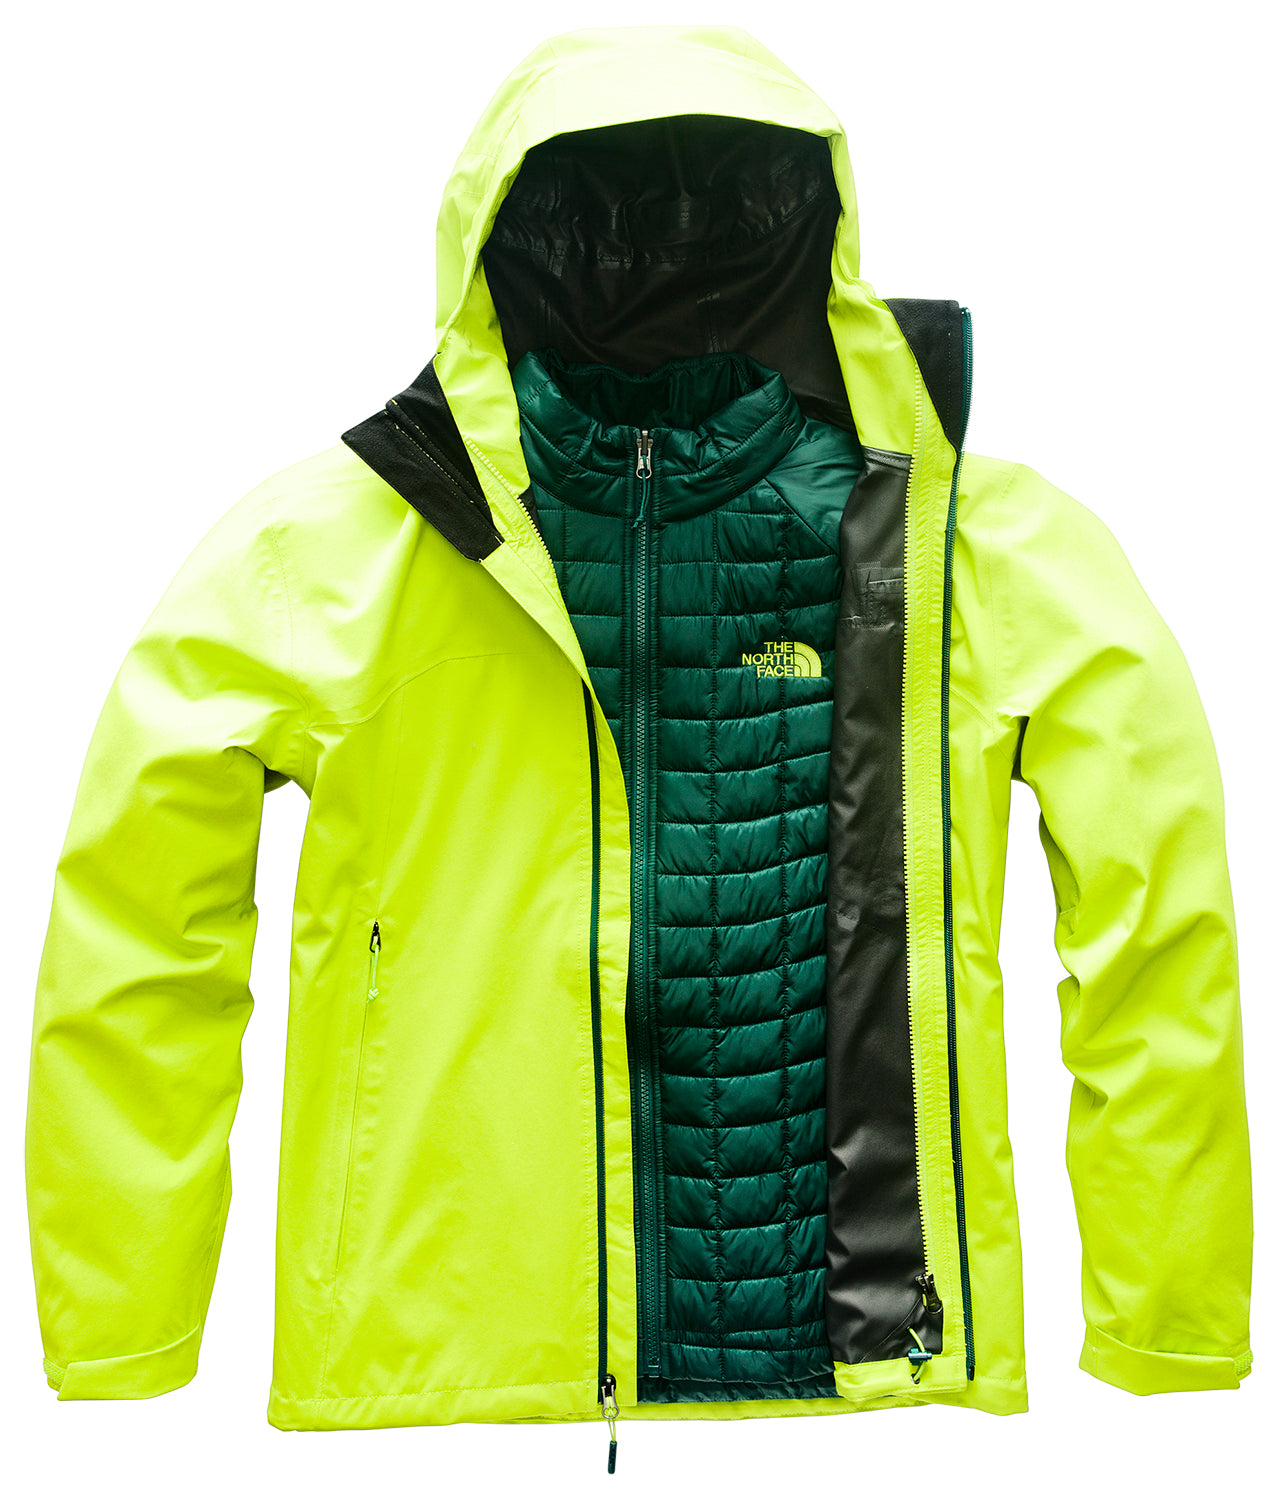 ... spain the north face thermoball triclimate jacket mens 9432d 674f8 ... 58b0d3453